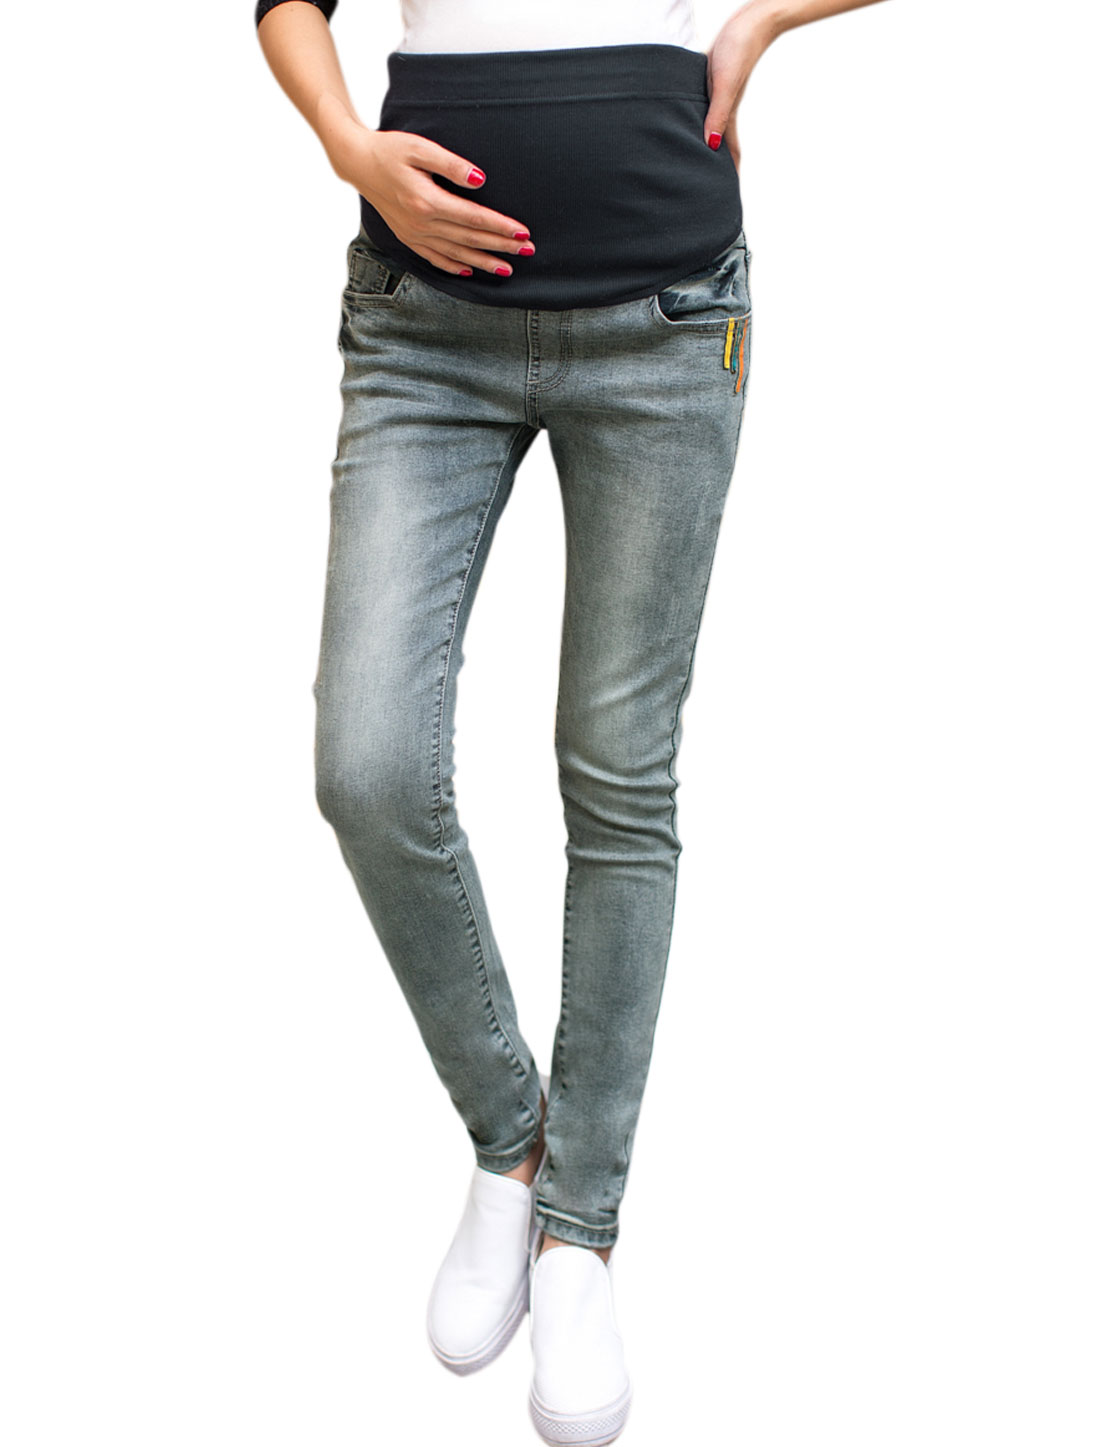 NZ02 Pregnant Women Belly Covered Skinny Jeans Gray XS